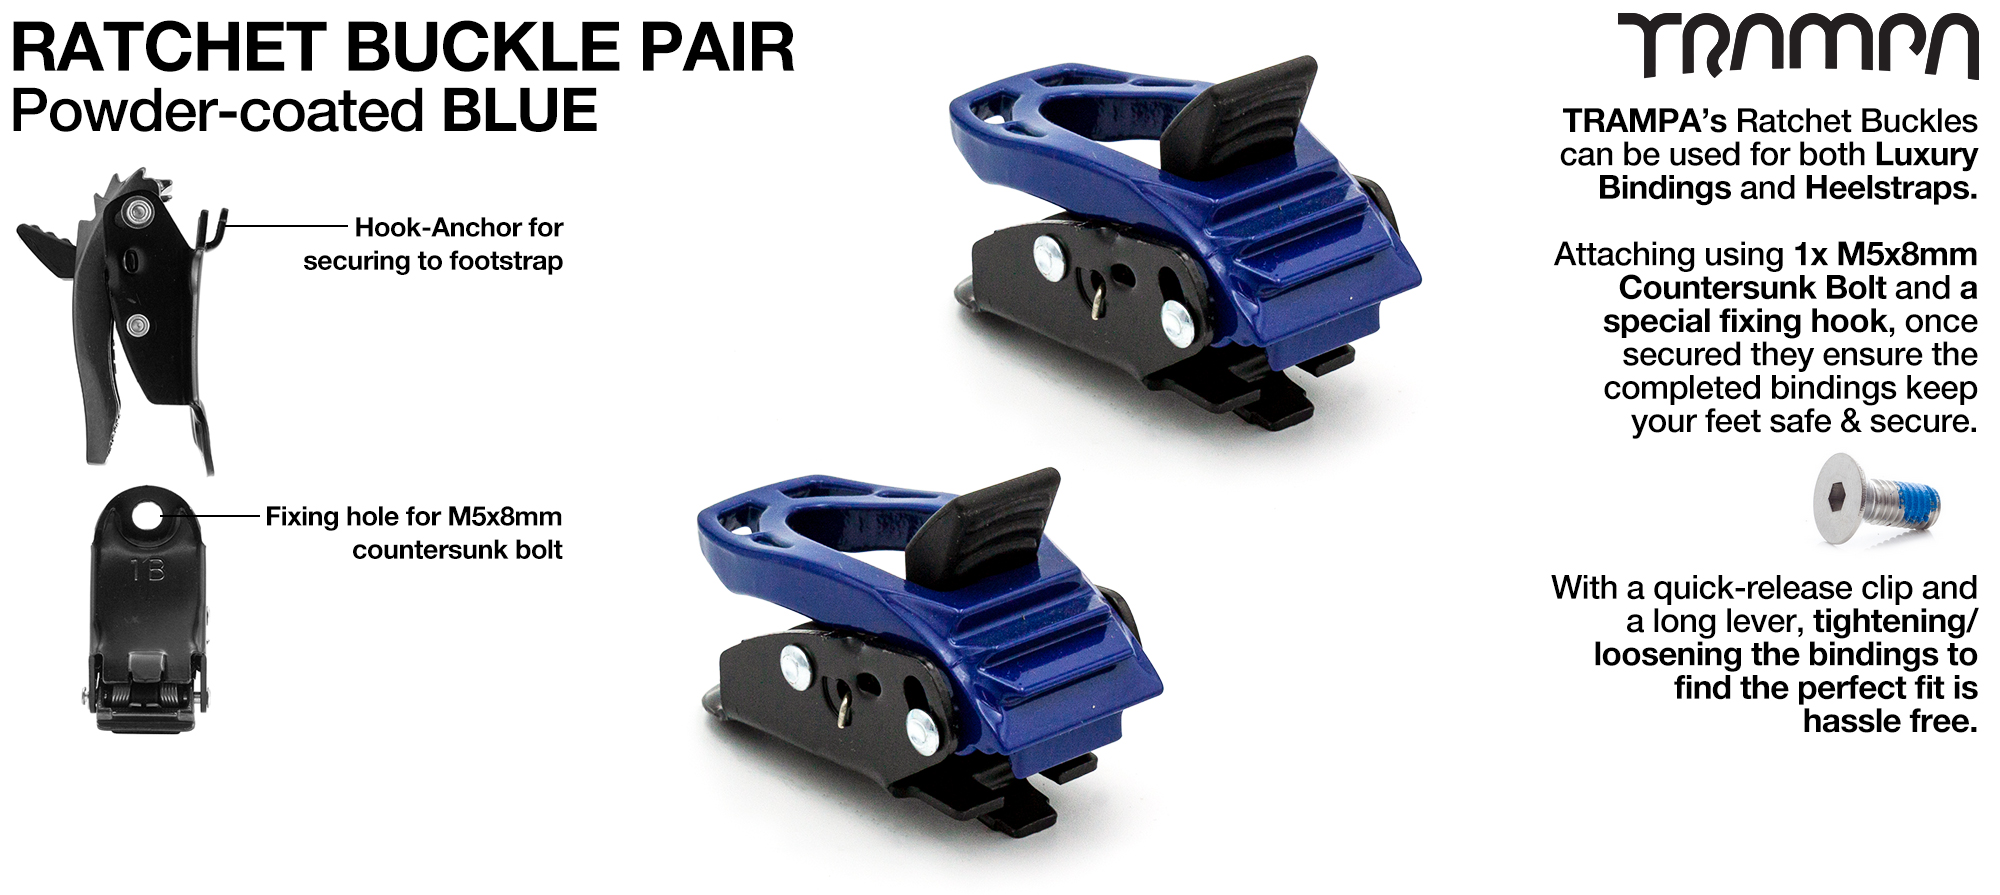 Blue Powder Coated Ratchet Buckles x 2